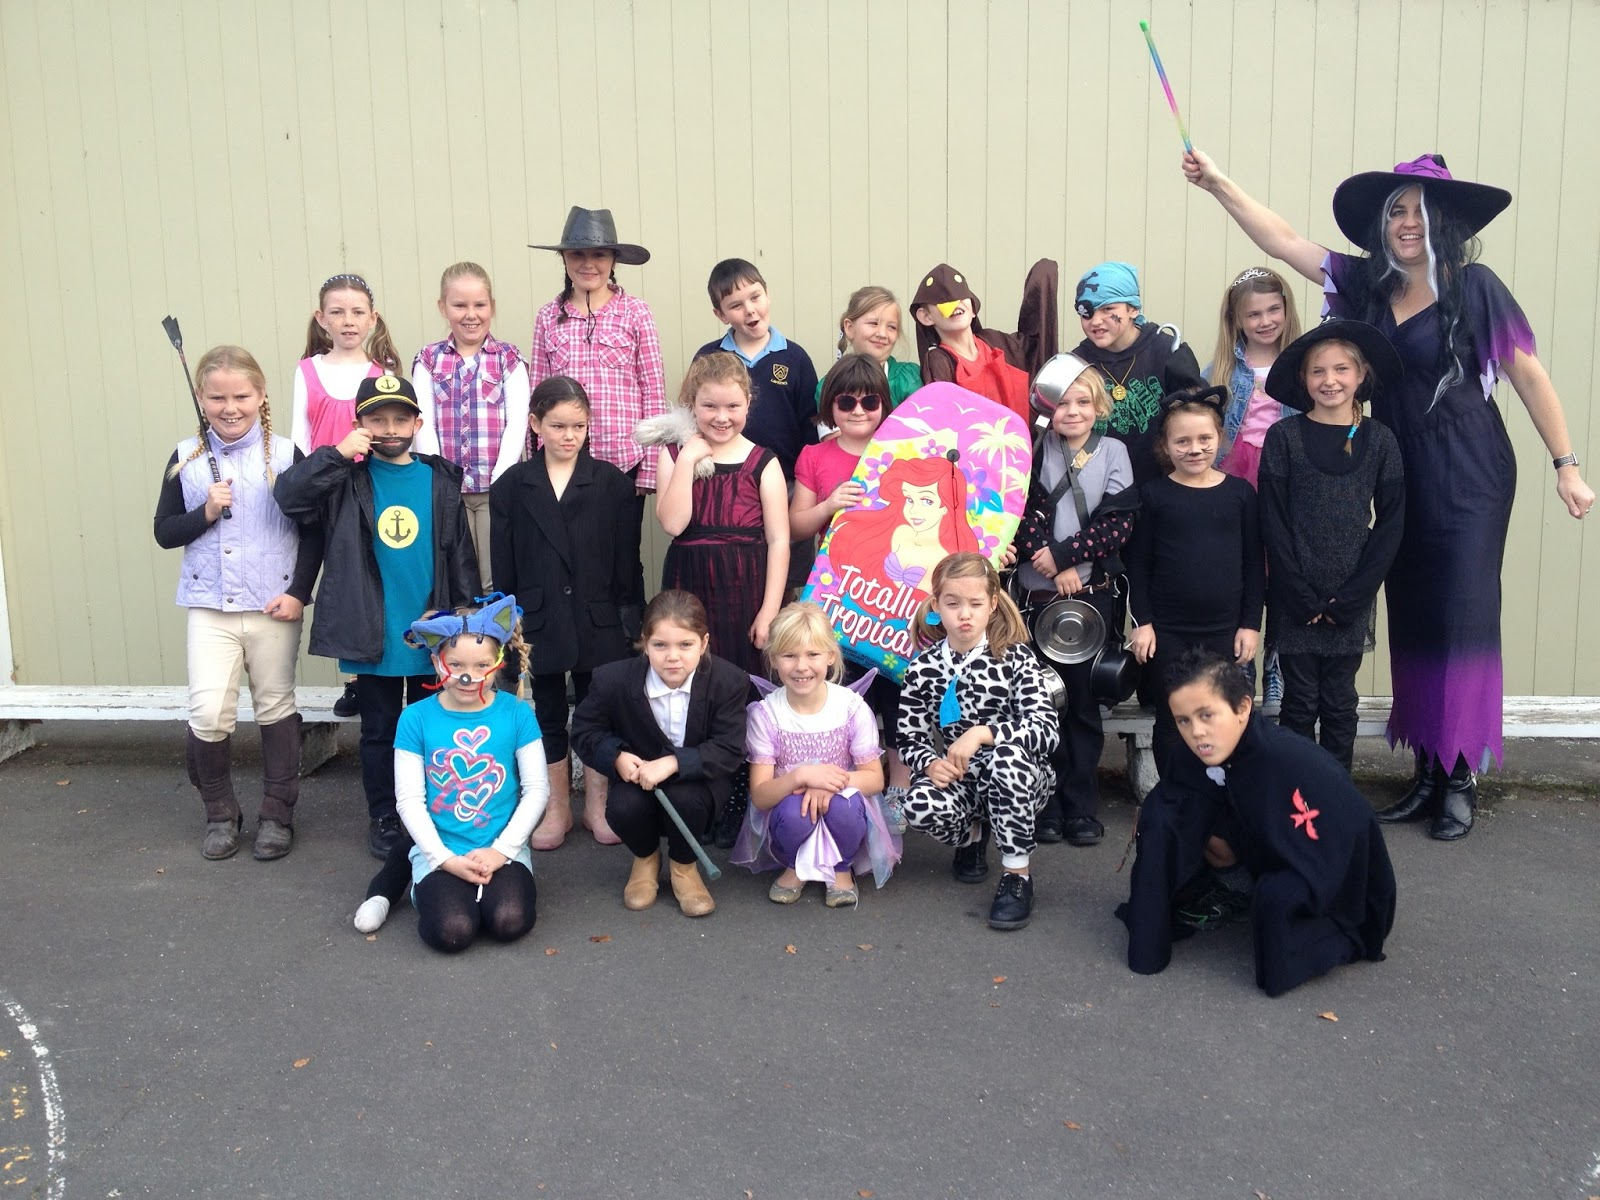 Room 4 Lawrence Area School: Book character dress up day